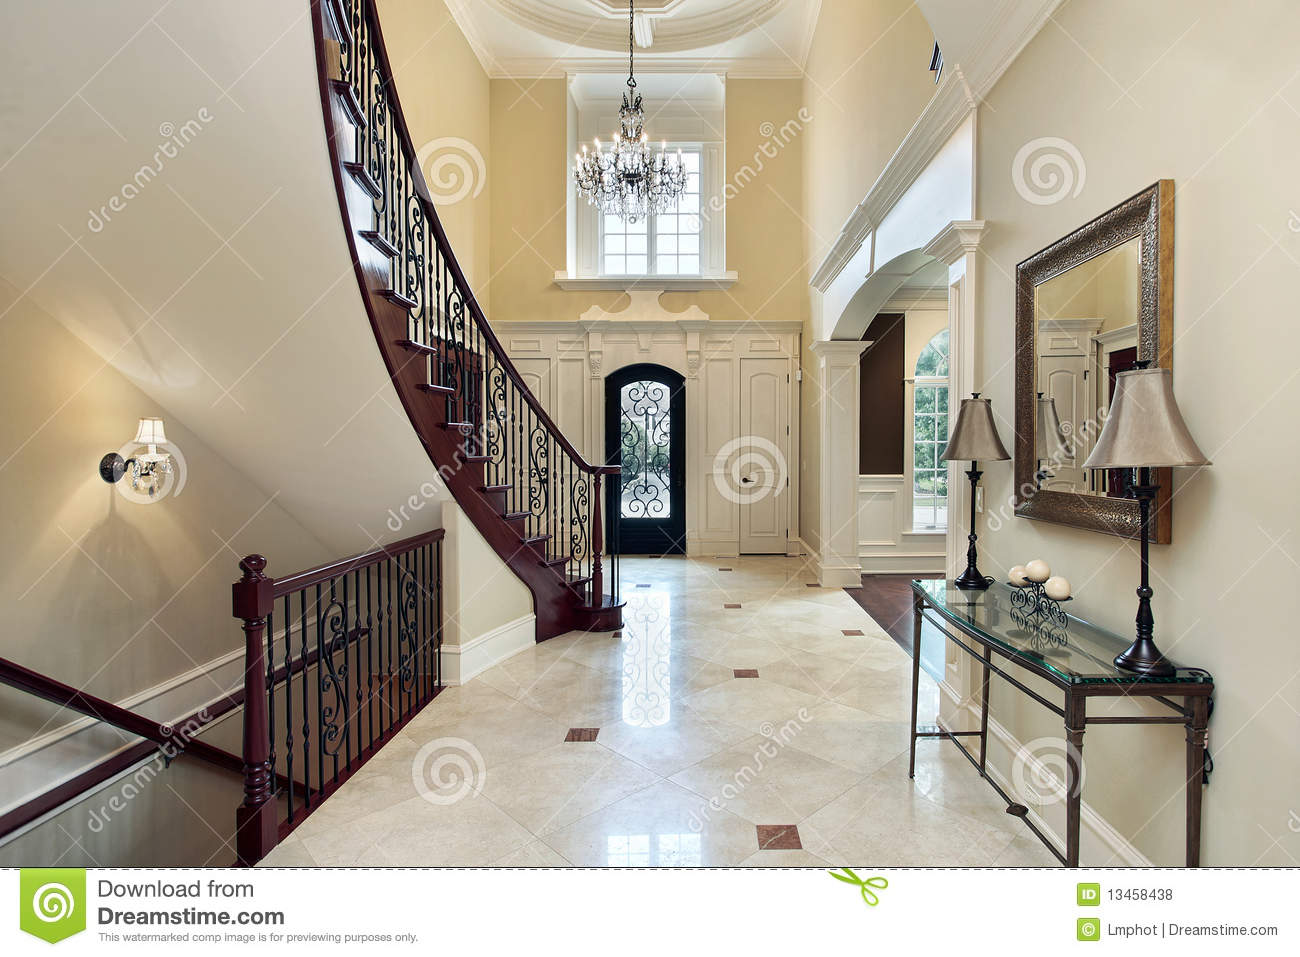 Foyer Window Cost : Foyer with second story window stock photo image of